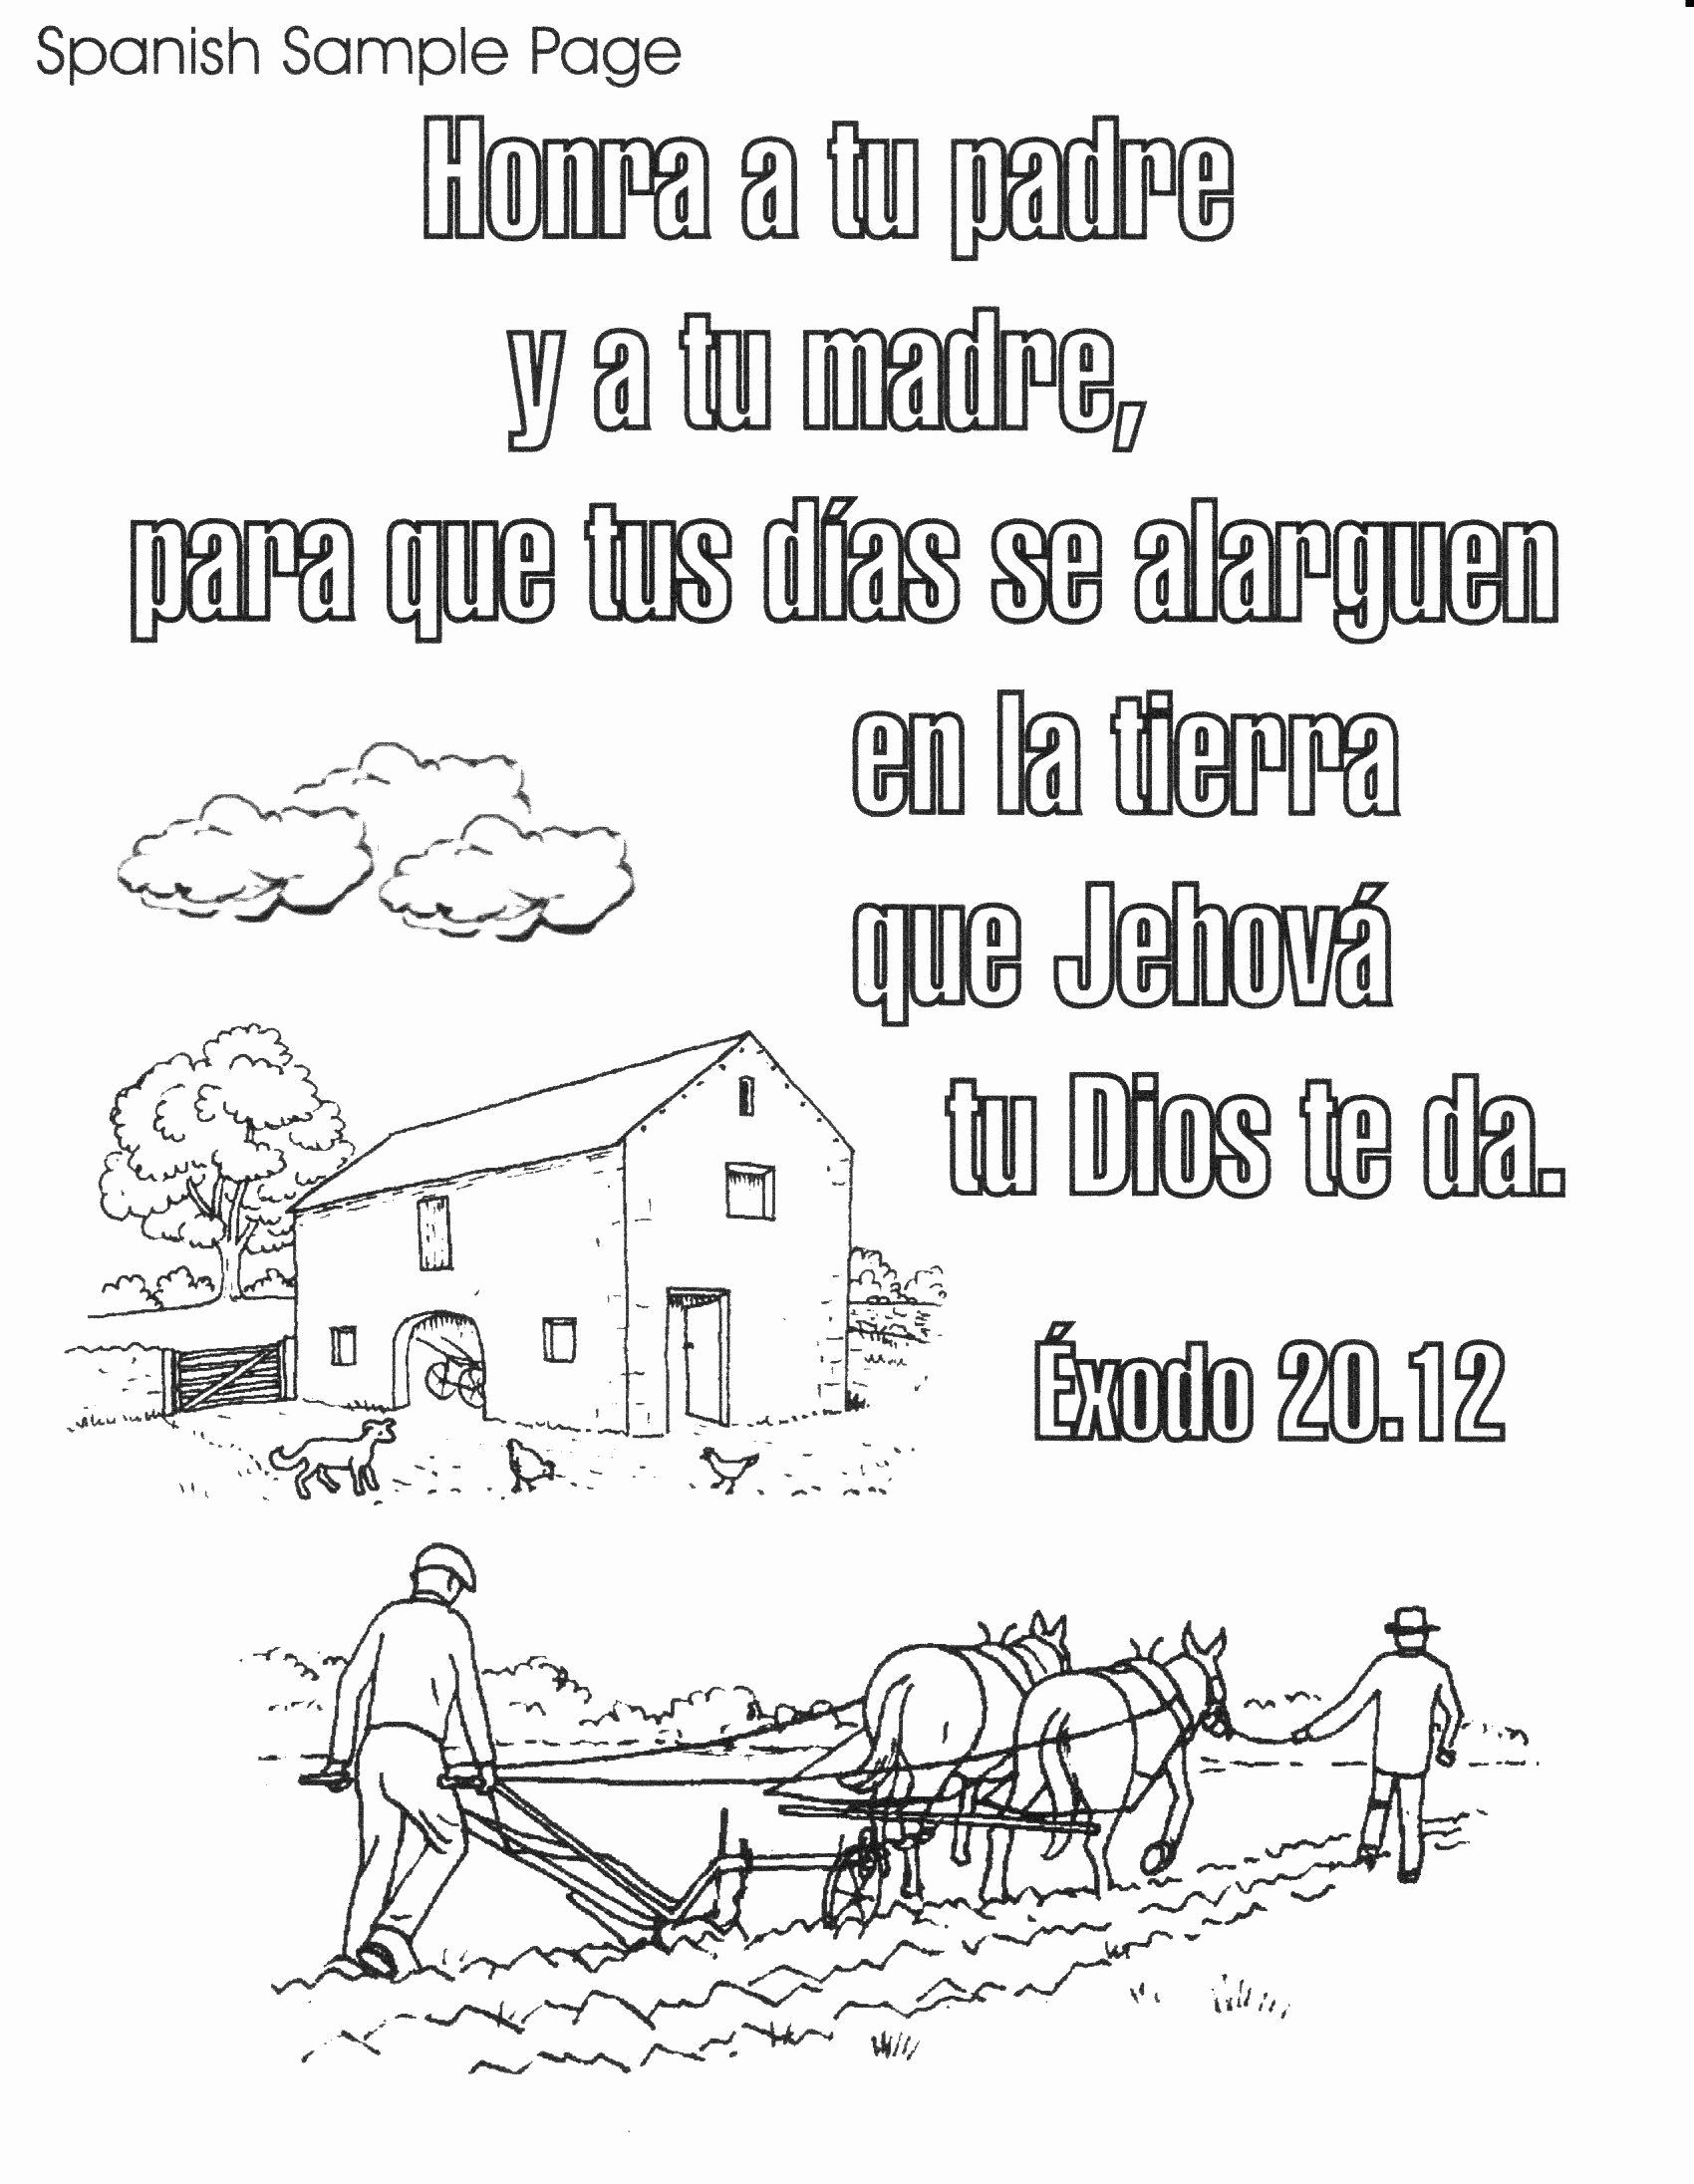 Coloring Book In Spanish Awesome Coloring Book In Spanish Best Bible Spanish Coloring In 2020 Christian Coloring Book Bible Coloring Pages Christian Coloring